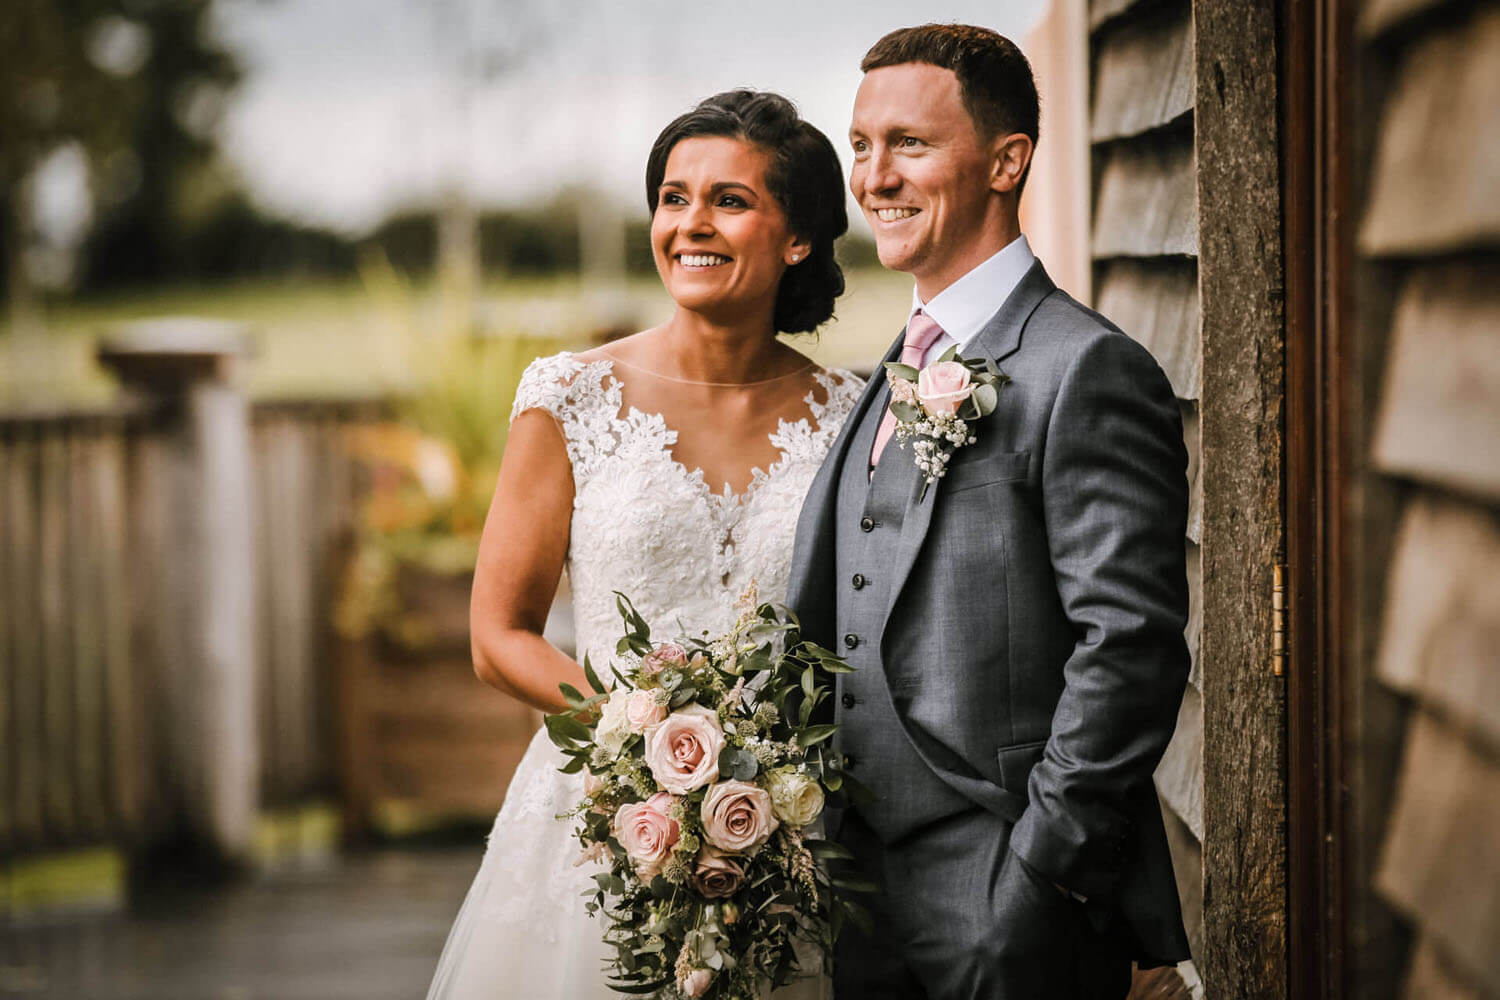 Colourful picture bride and groom smiling Sandhog oak barn by Ormskirk wedding photographer Wes Simpson